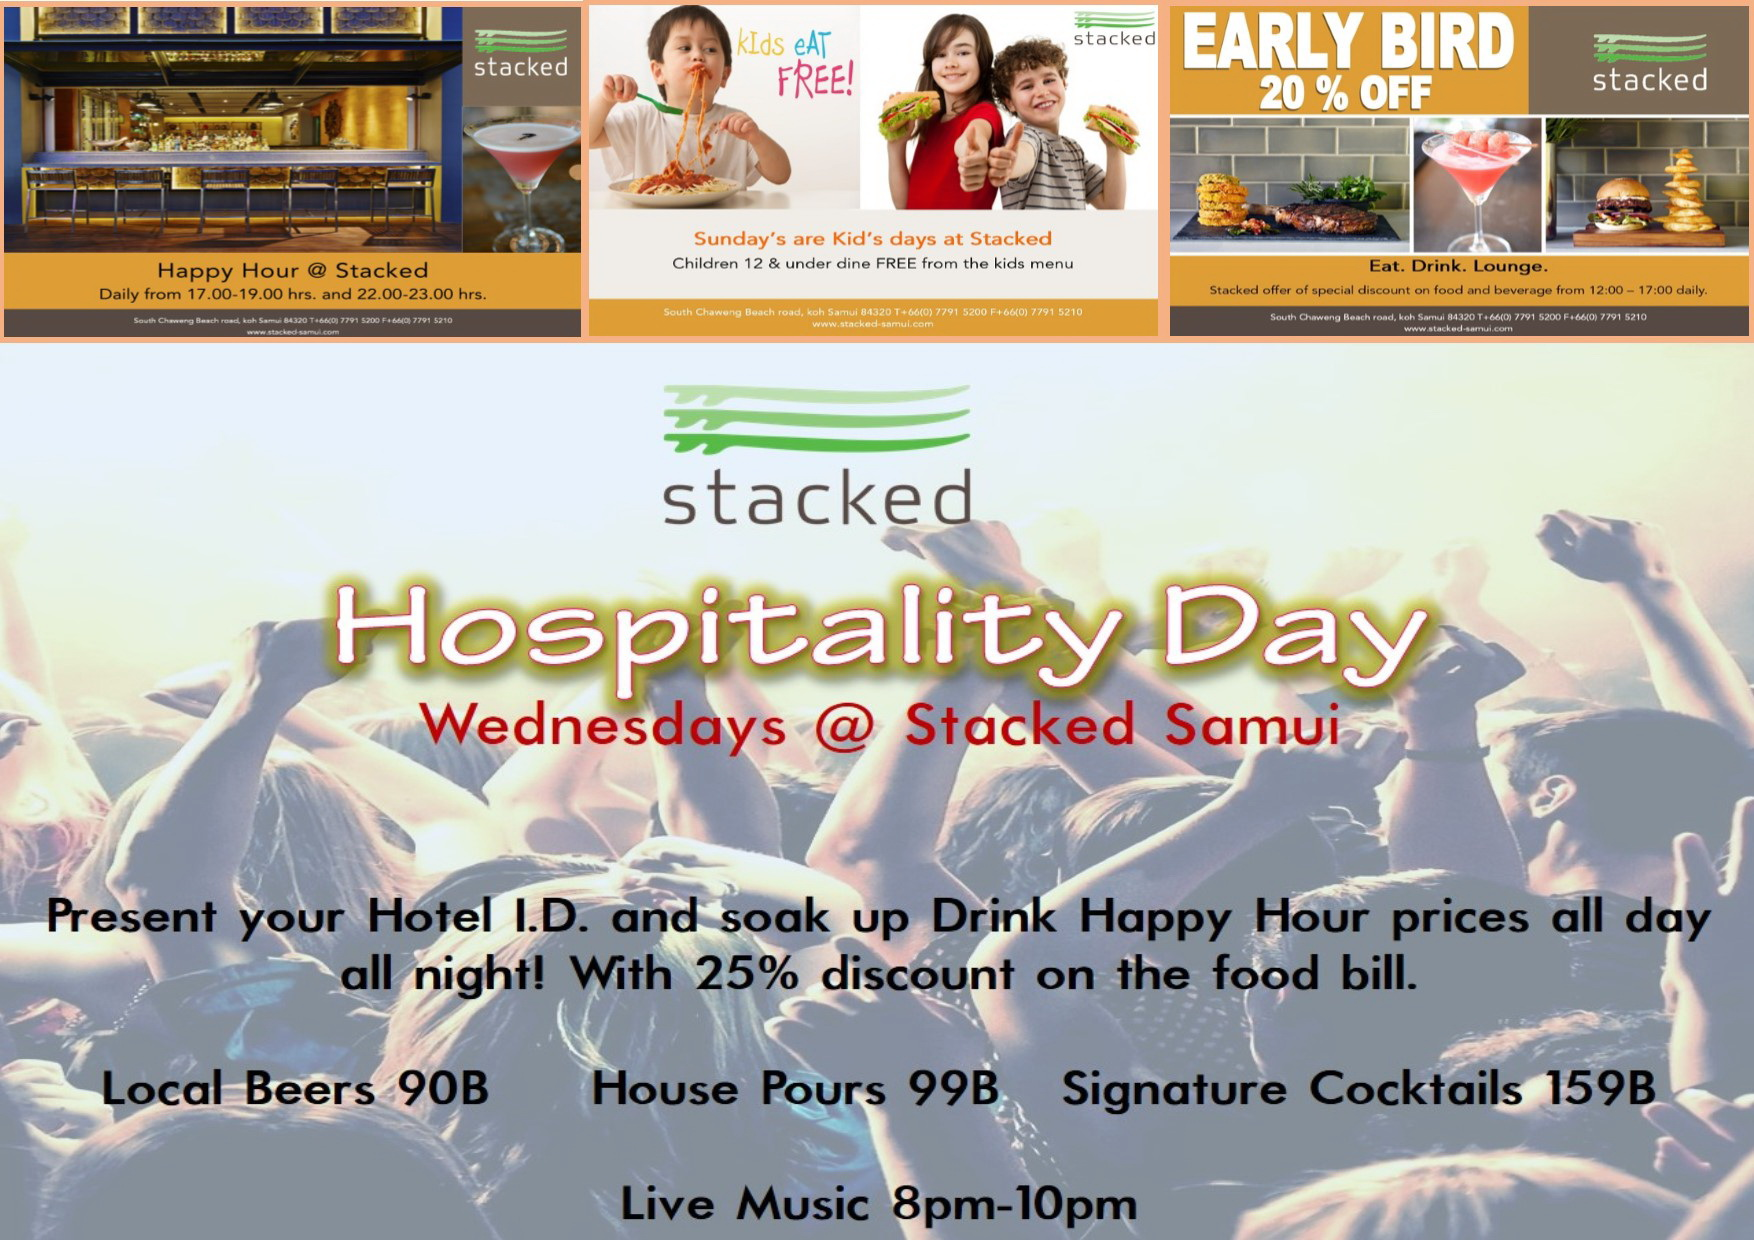 Hospitality Day - Wednesdays at Stacked - Samui Times